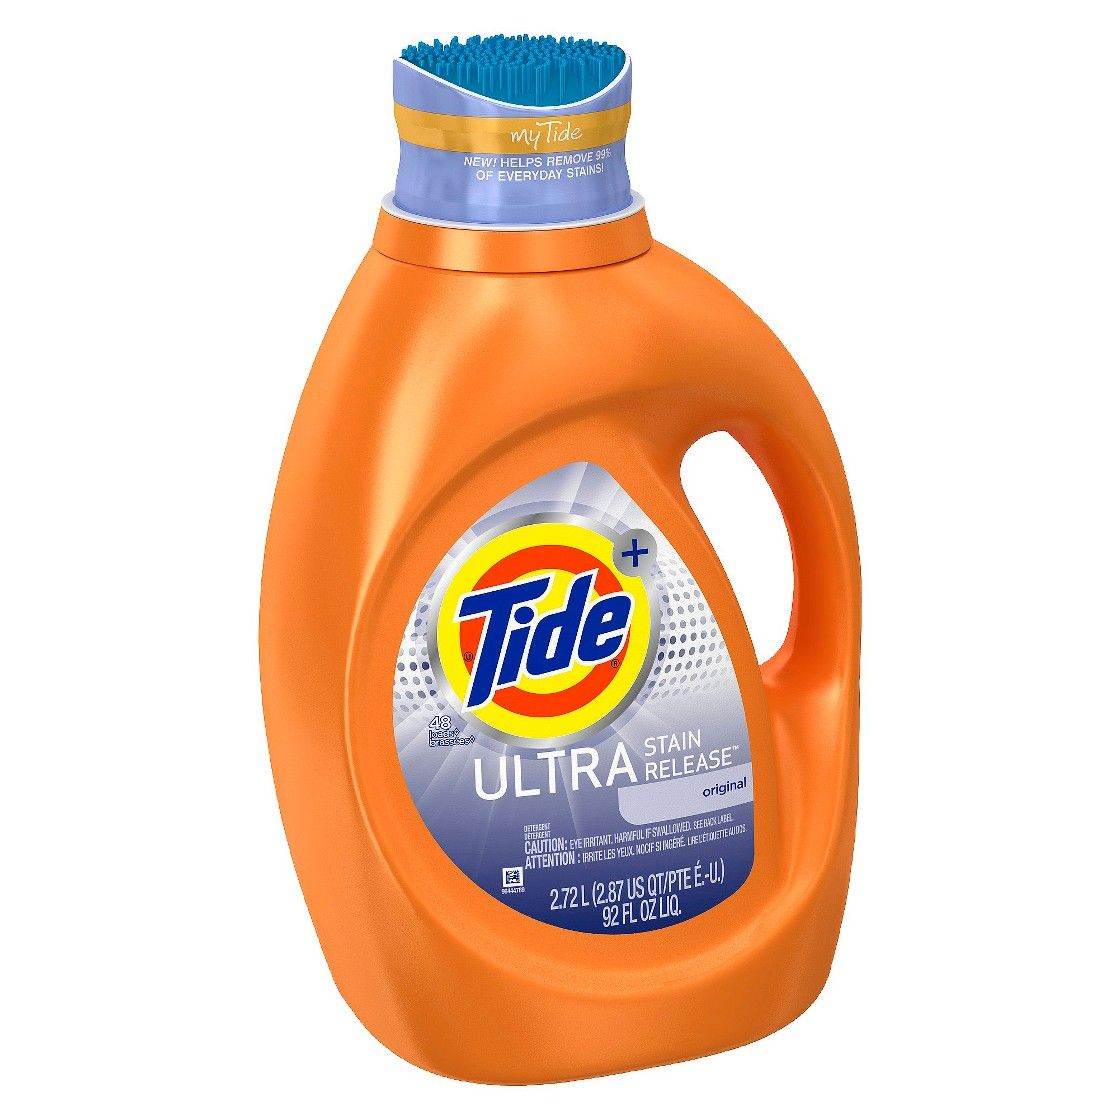 Tide Ultra Stain Release Liquid Laundry Detergent 92 Oz